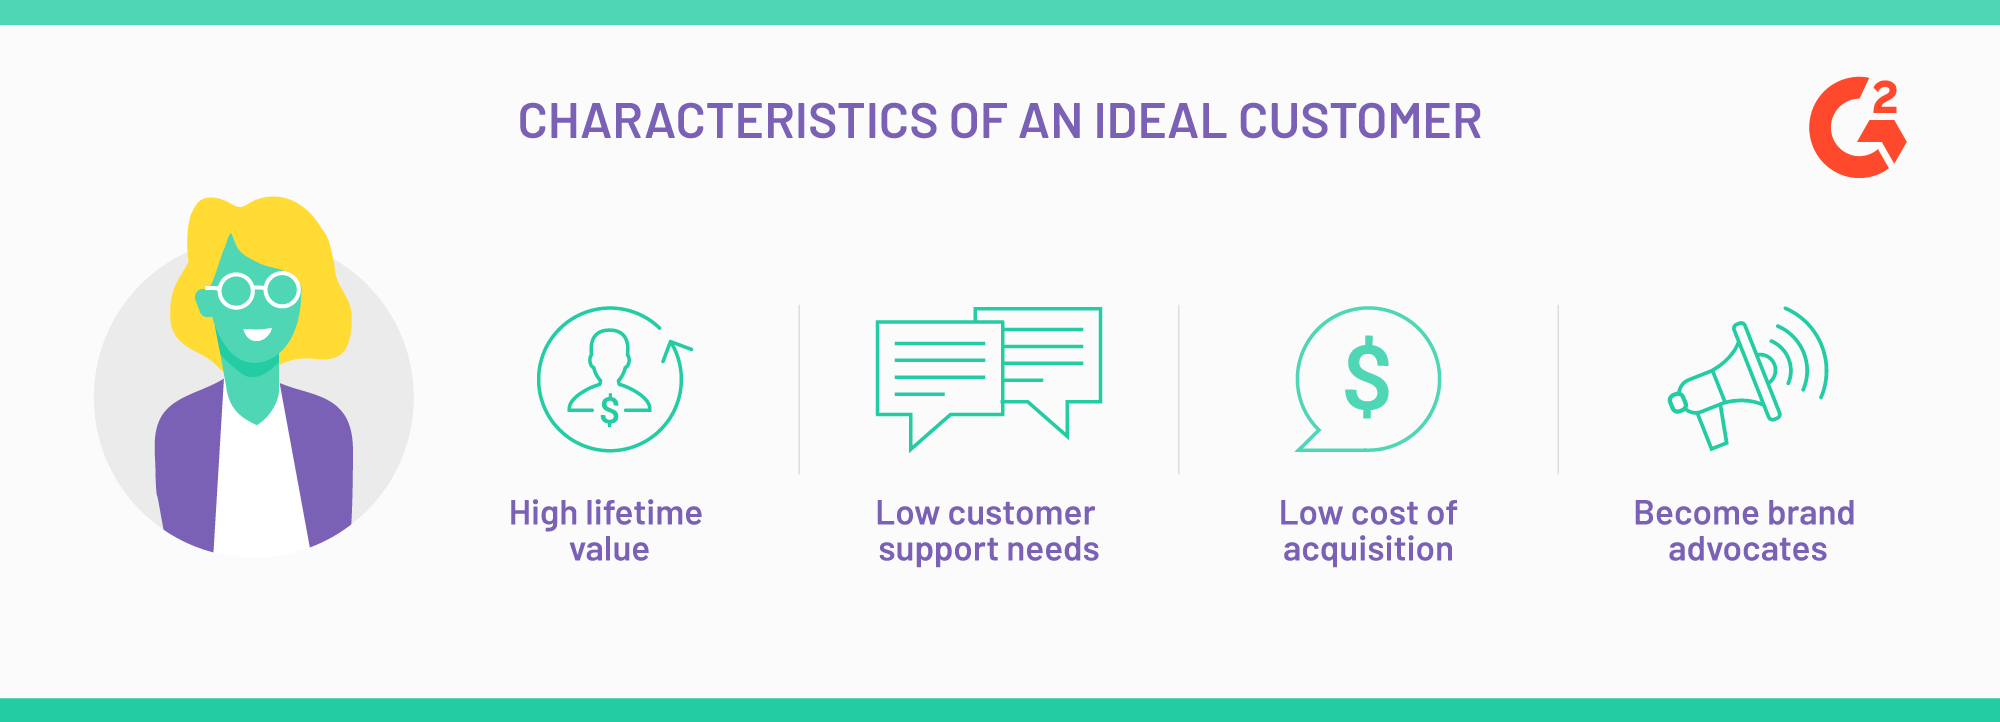 How to Create a Customer Profile That Converts Leads (+Template)